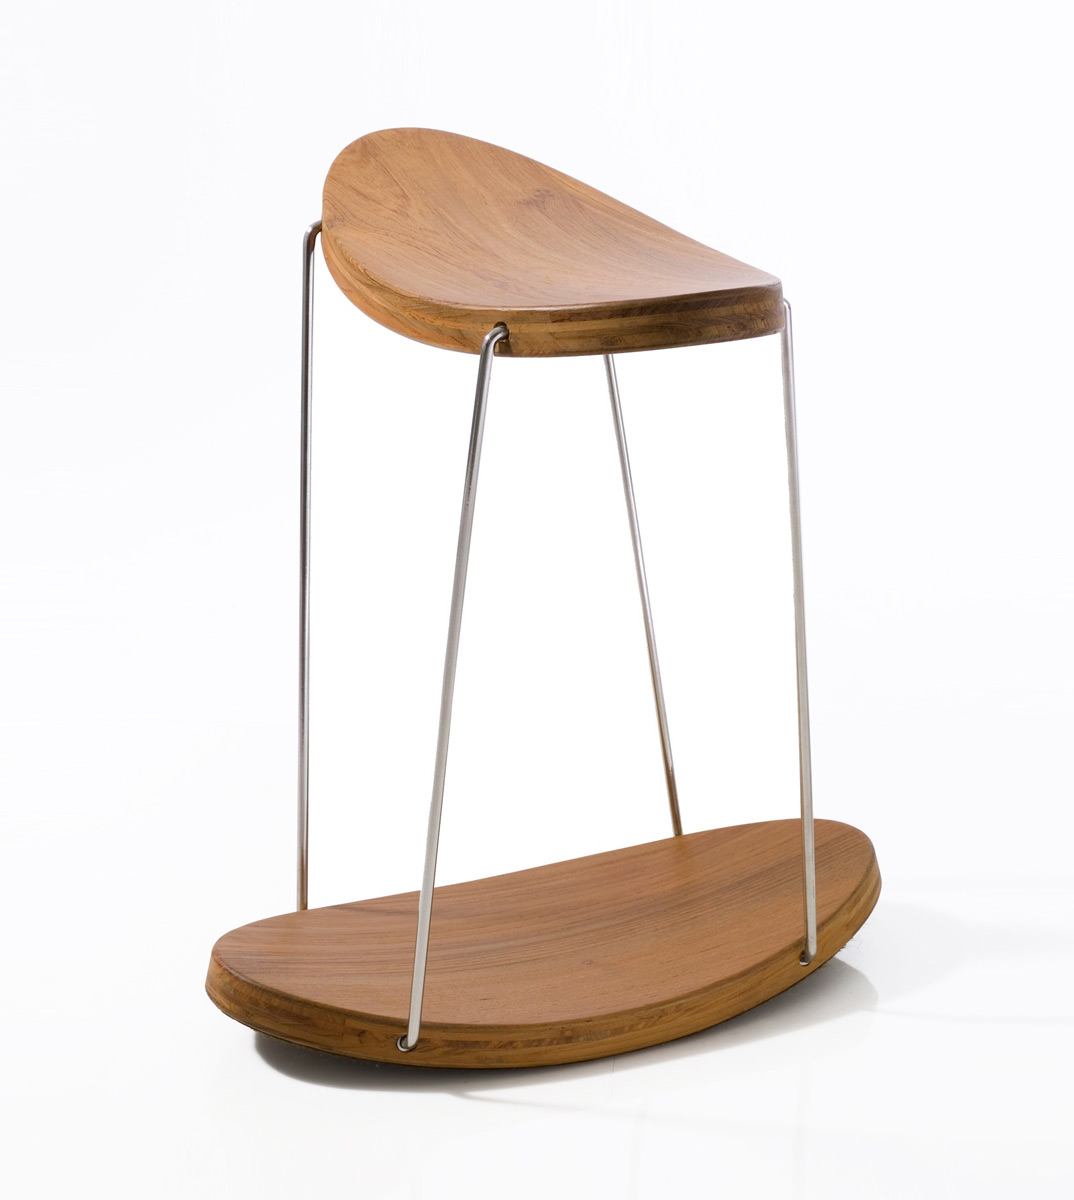 Rocking Stool, Yaacov Kaufman, Gaga&Design, 2007